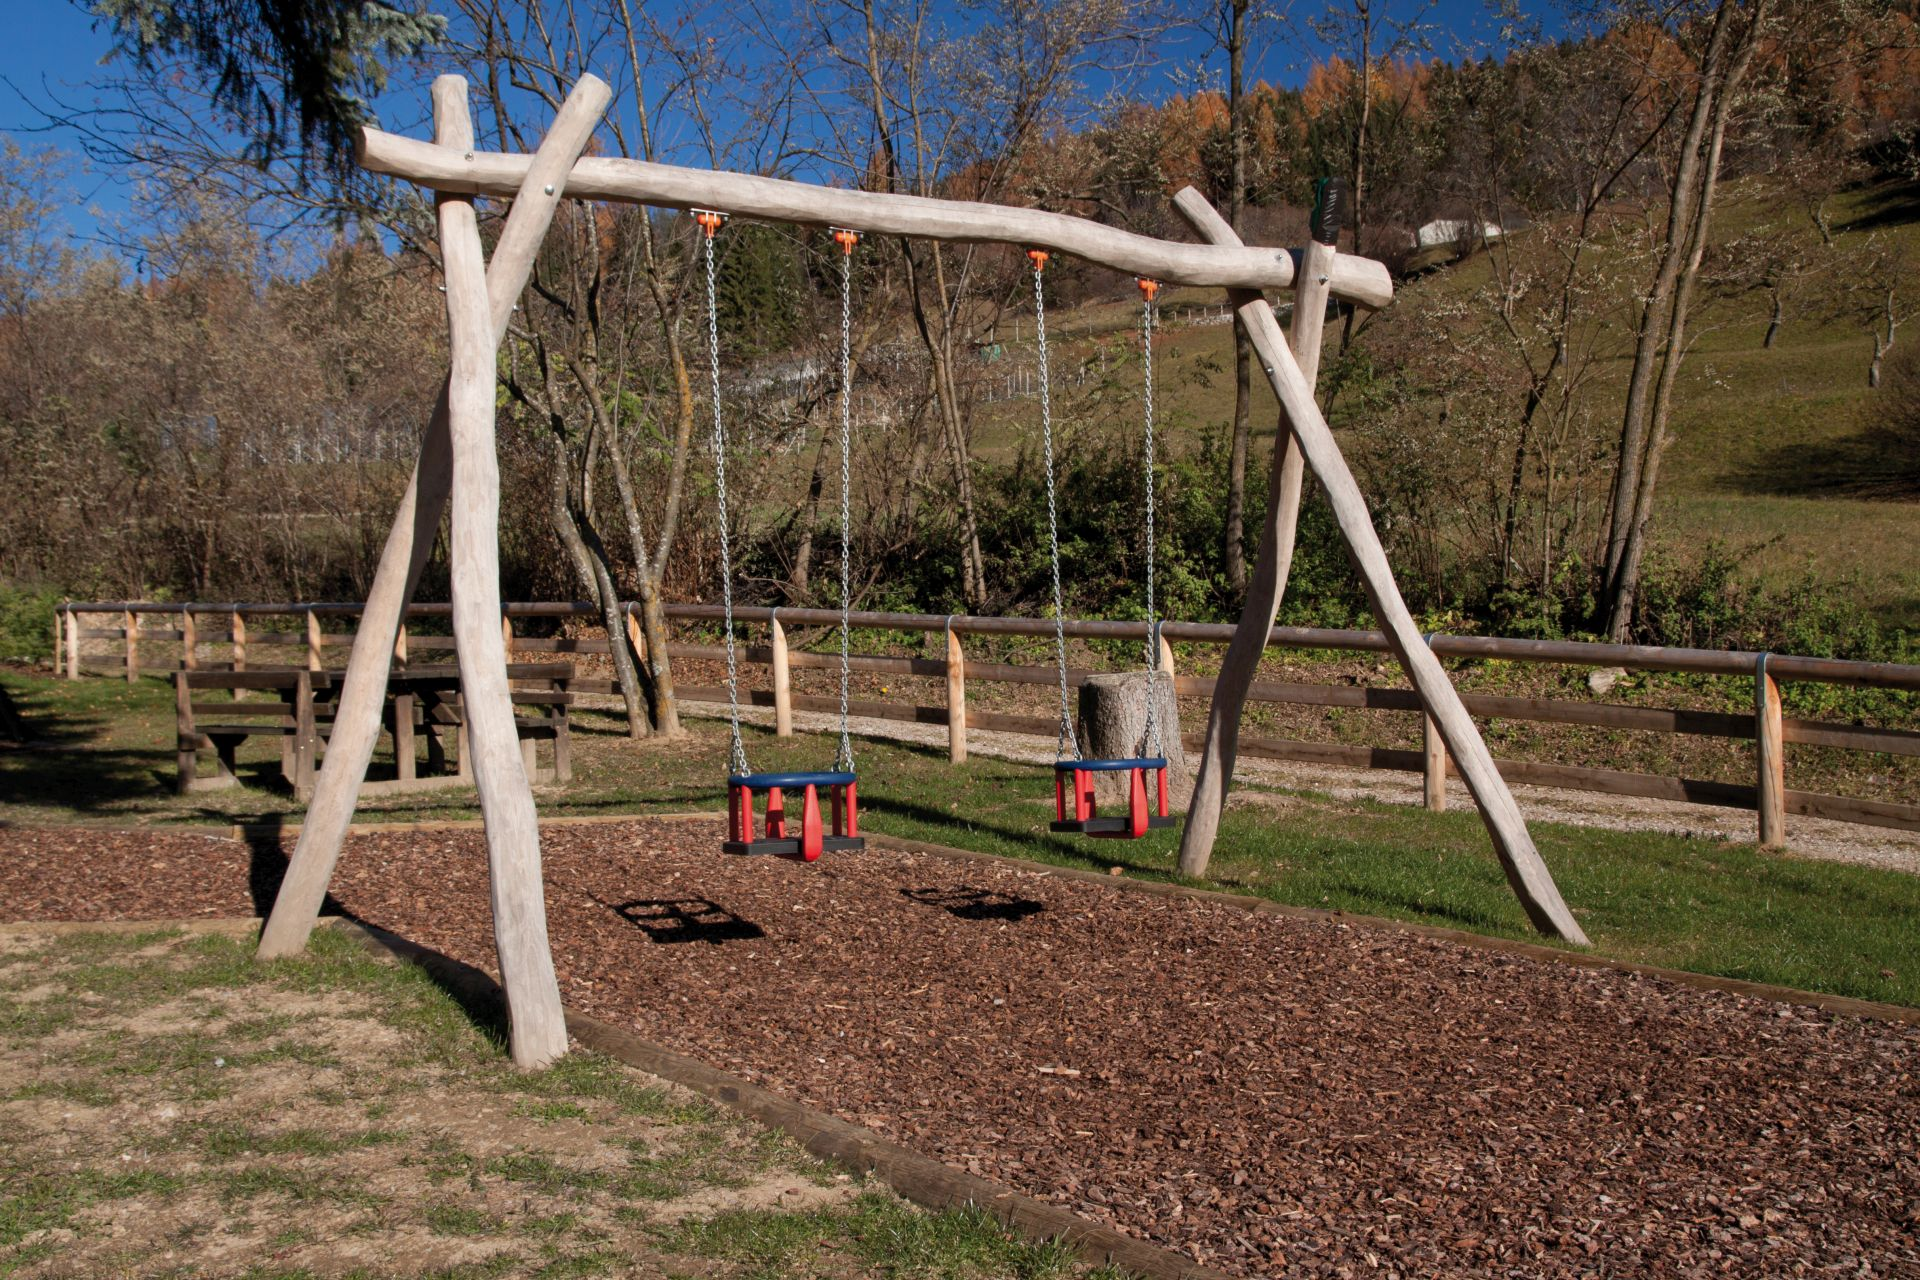 Holzhof COUNTRY (FACILITIES IN ROBINIA WOOD) Swing in robinia with 2 plank seats, posts for underground